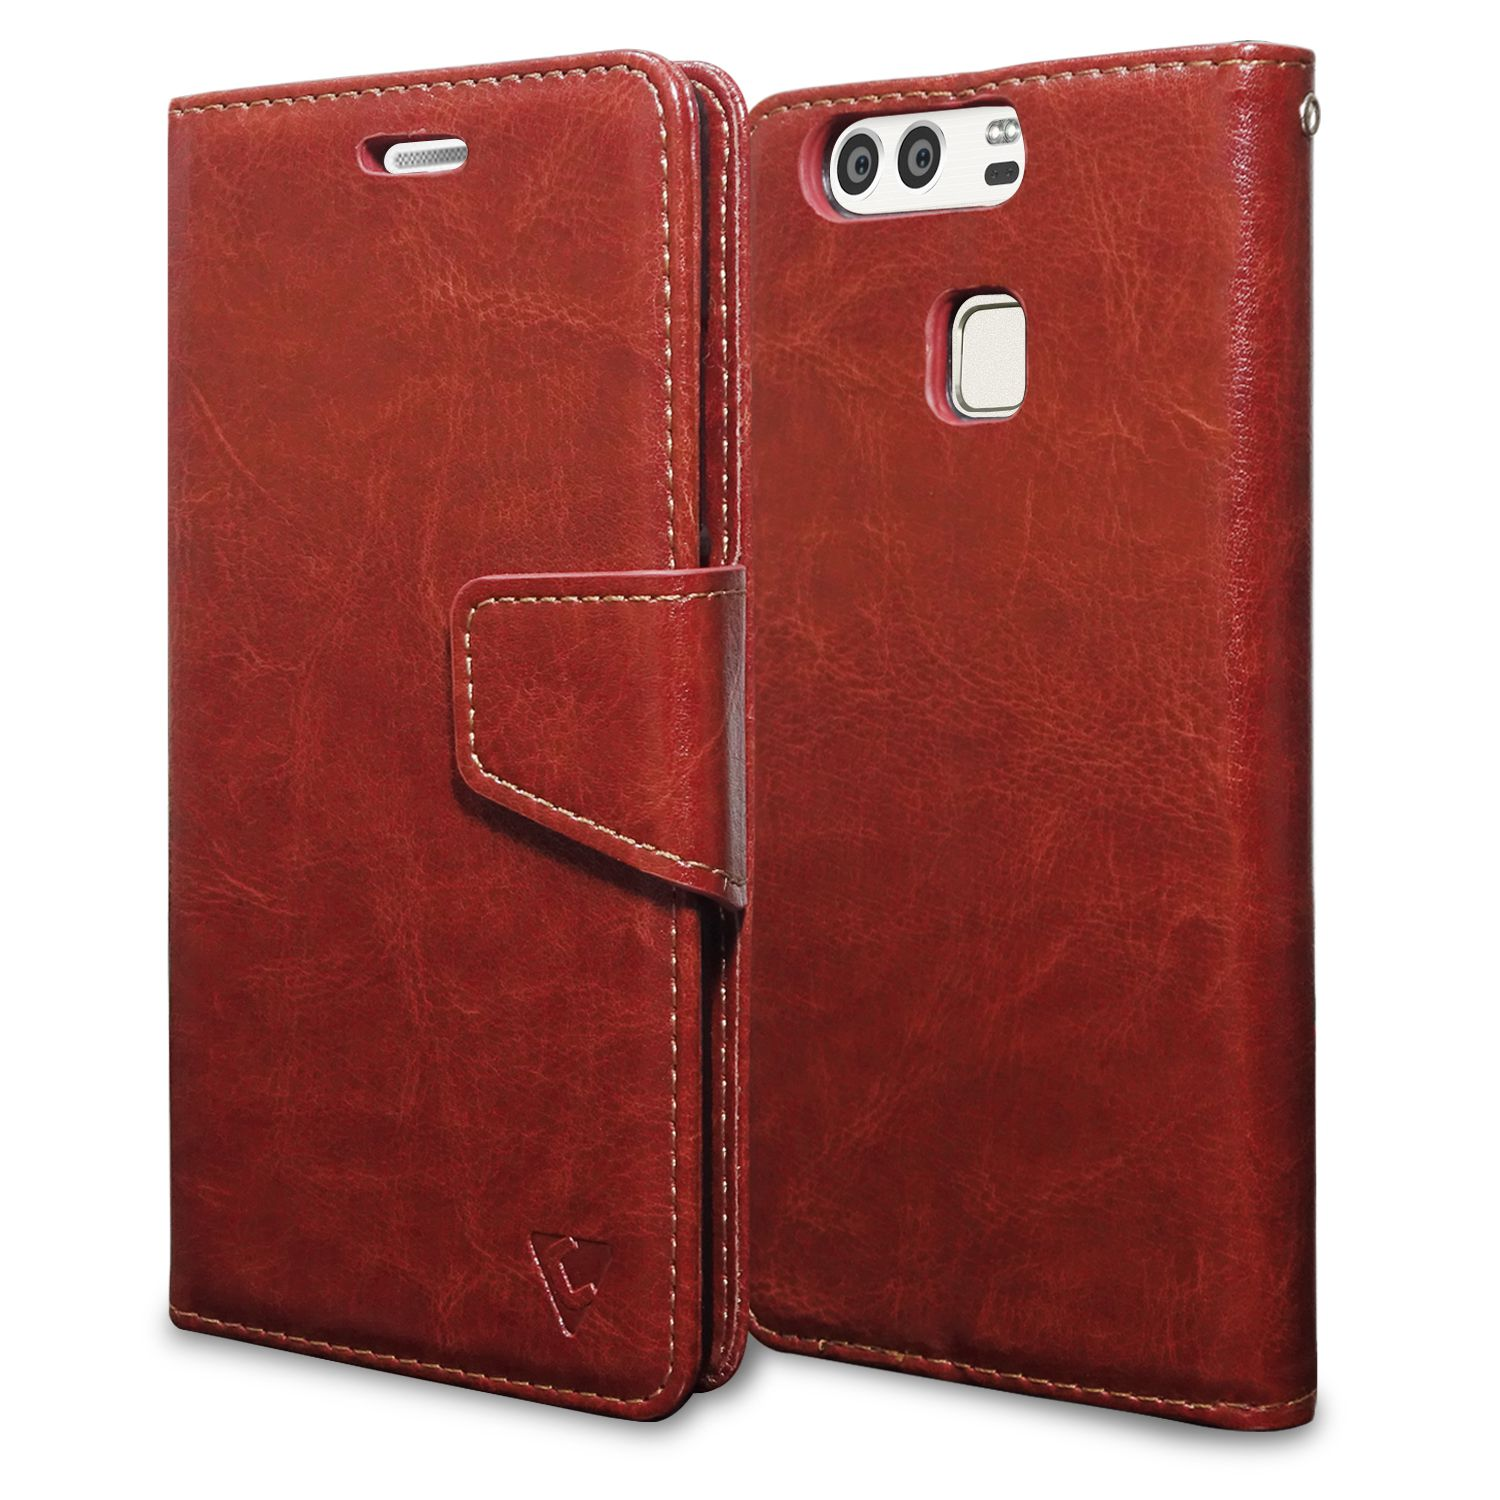 new arrivals 51dbb bf5a2 CEEGO FLIP COVER FOR LENOVO Z2 PLUS price at Flipkart, Snapdeal ...